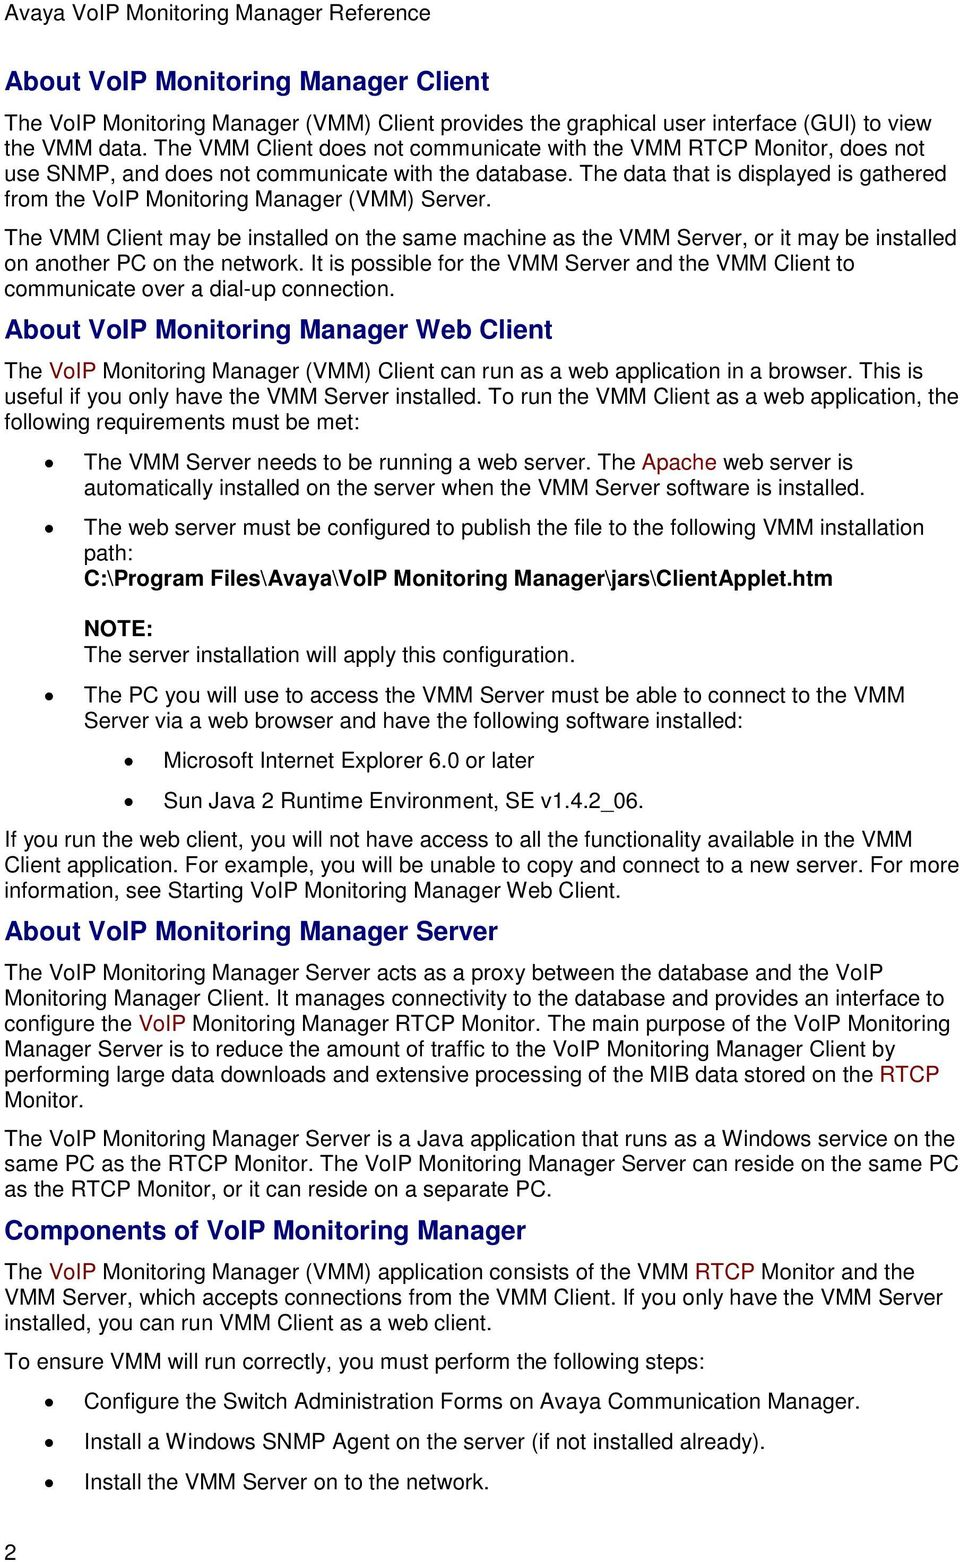 The data that is displayed is gathered from the VoIP Monitoring Manager (VMM) Server.